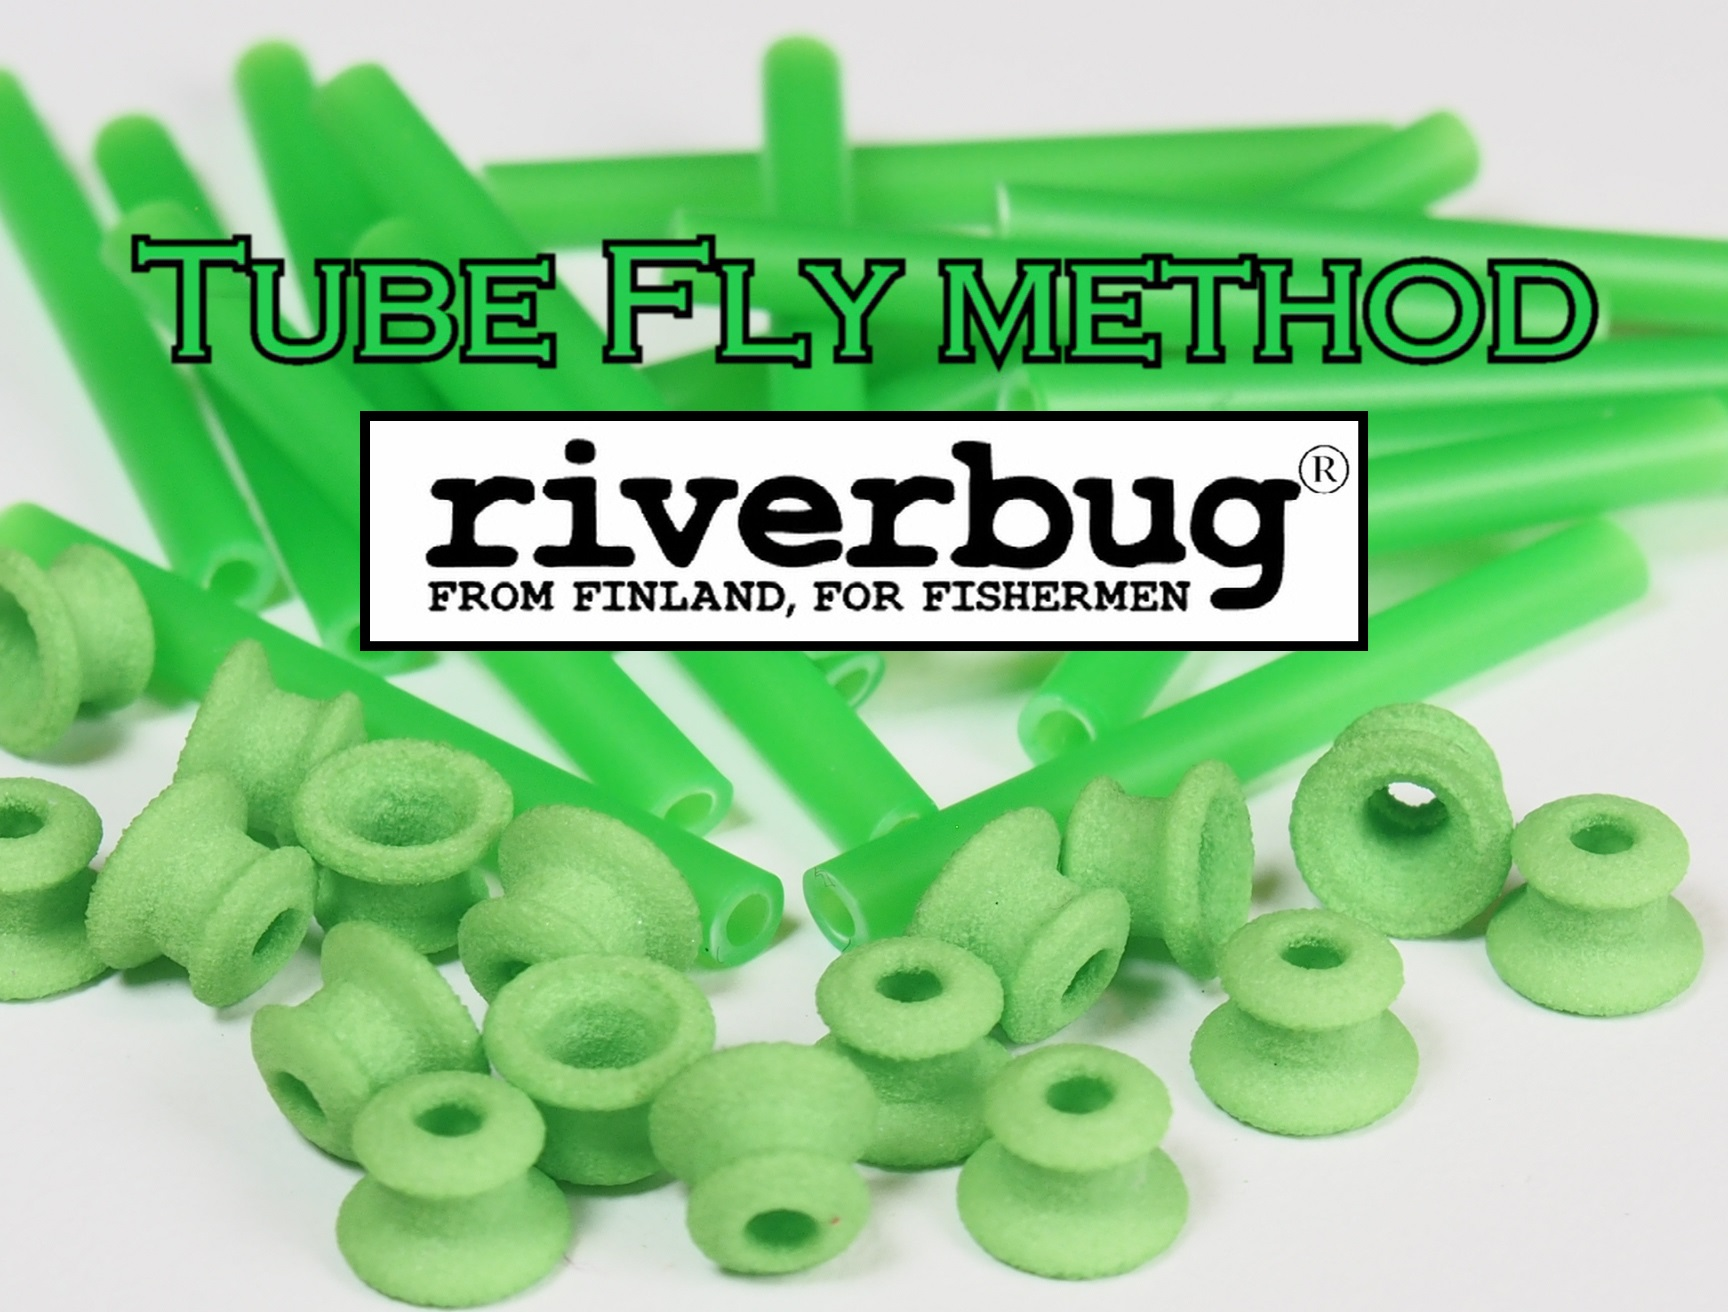 Tube Fly Sleeve byg RiverBug - Version 2.0 - Putkiperhorunko